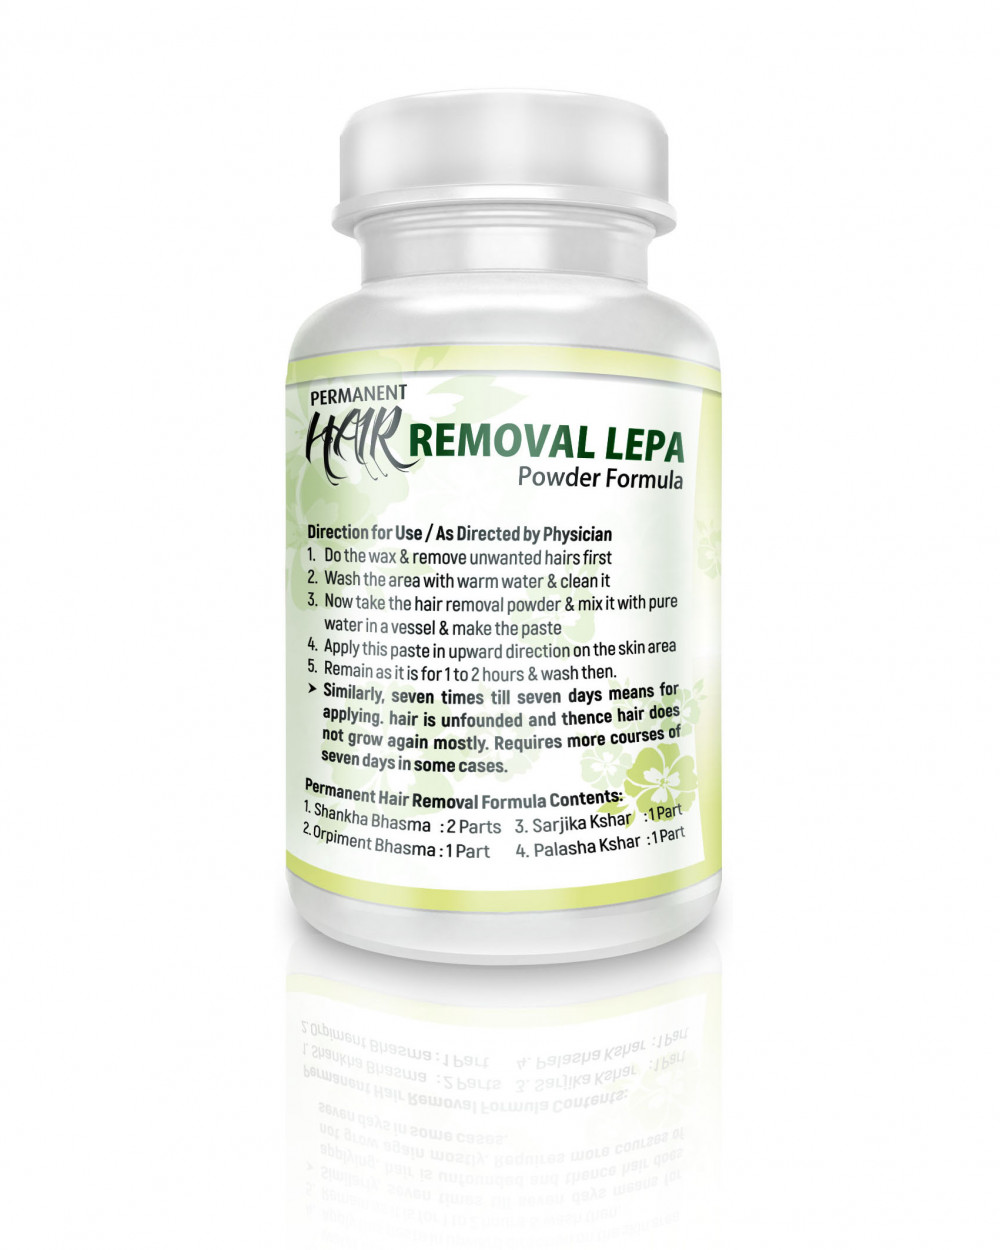 Compare Shipping Rates >> Buy Permanent Hair Removal Lepa (powder) 90gms - to remove ...